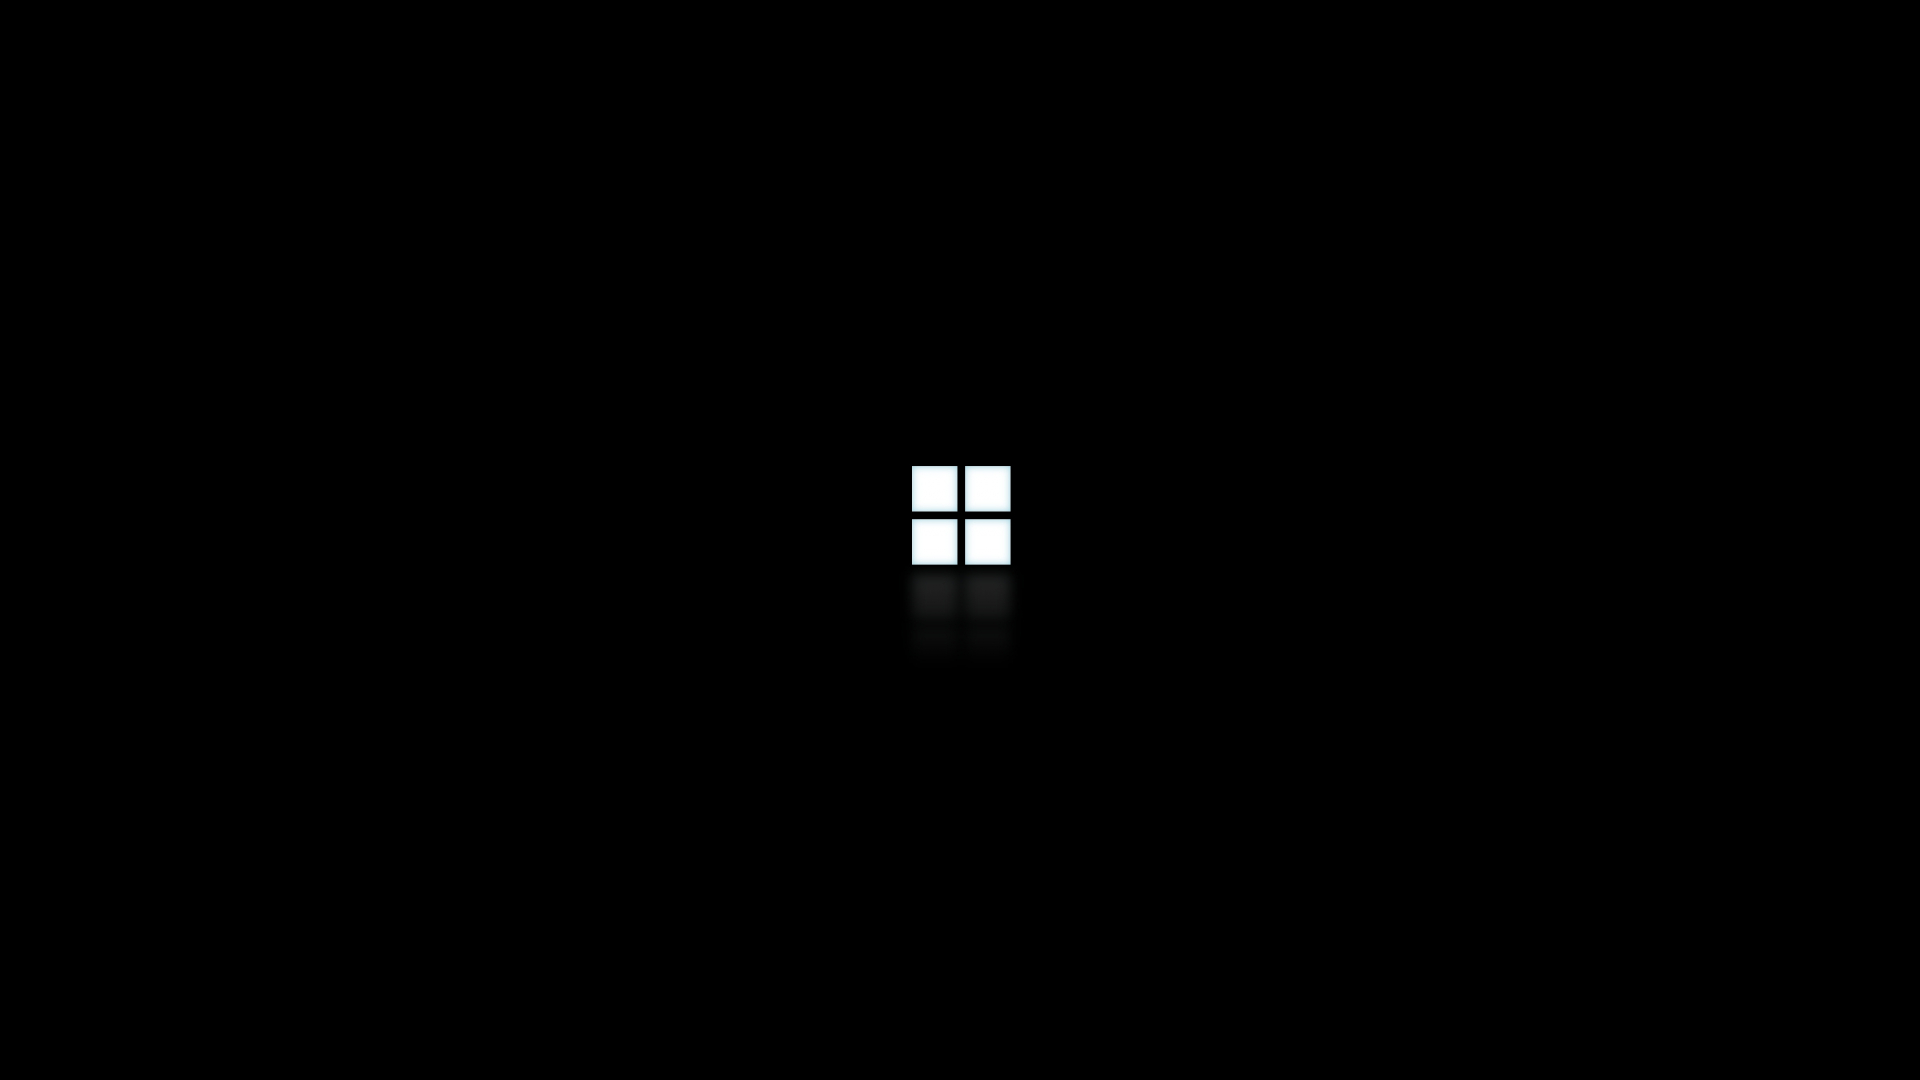 Free download Windows Minimalist 3000x1687 for your ...